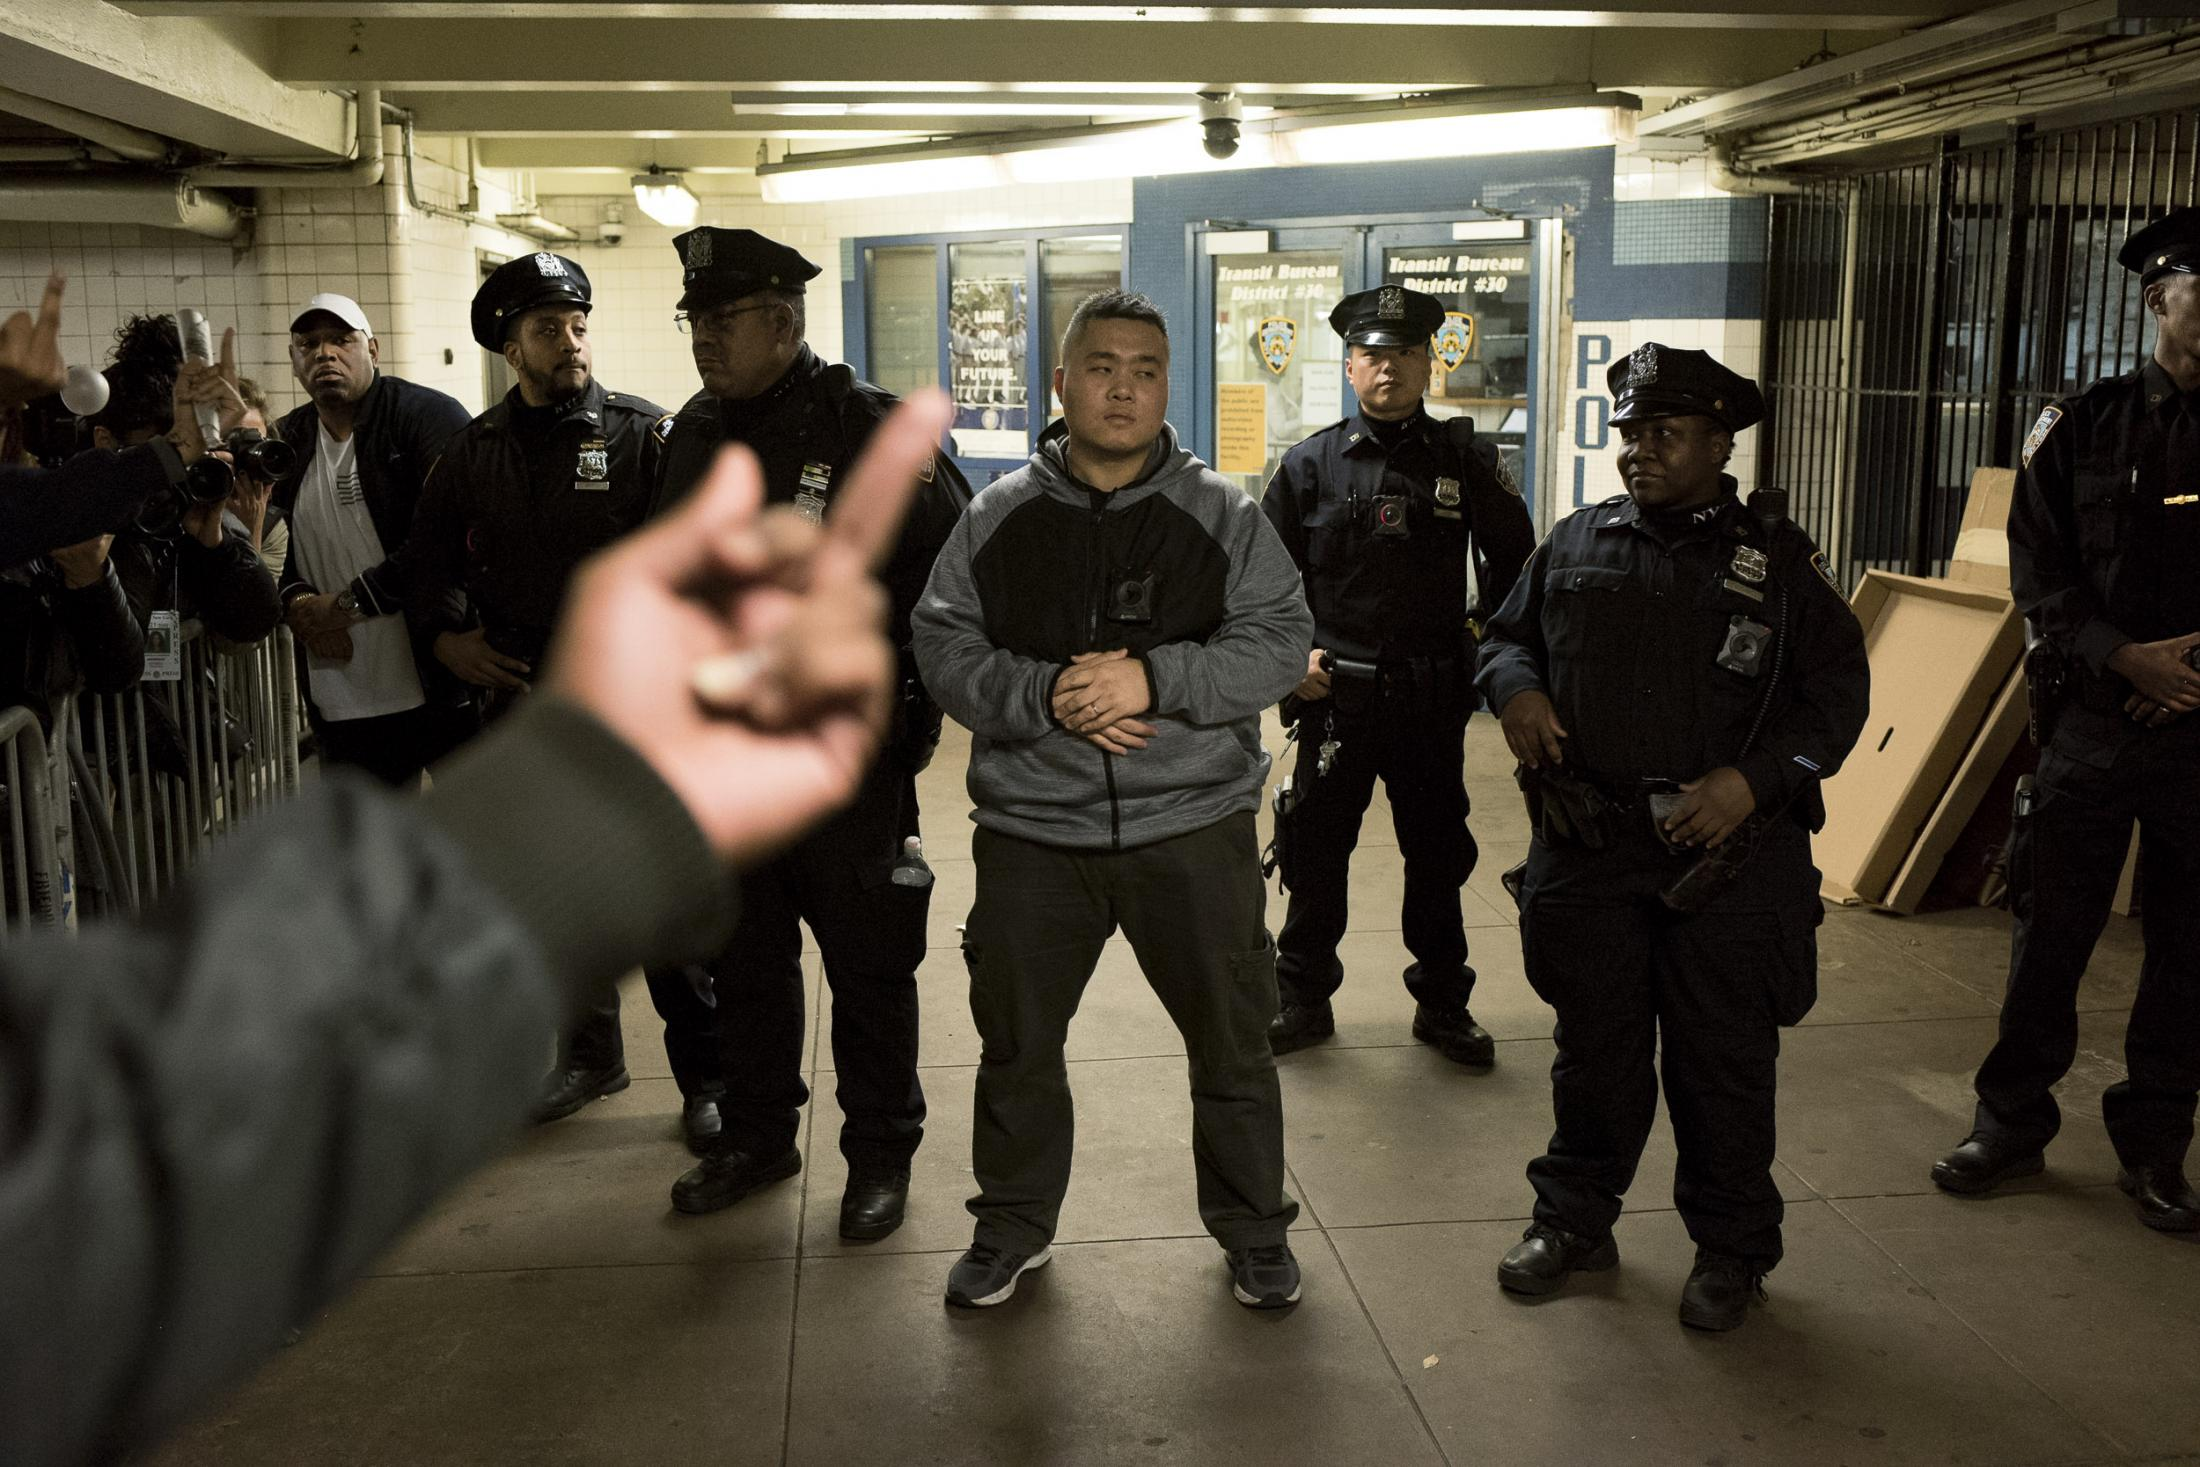 A group of NYPD officers standing at one of the exists of Hoyt station, while protesters yell and show them signs of anger and disgust. Brooklyn, NY. November 2019